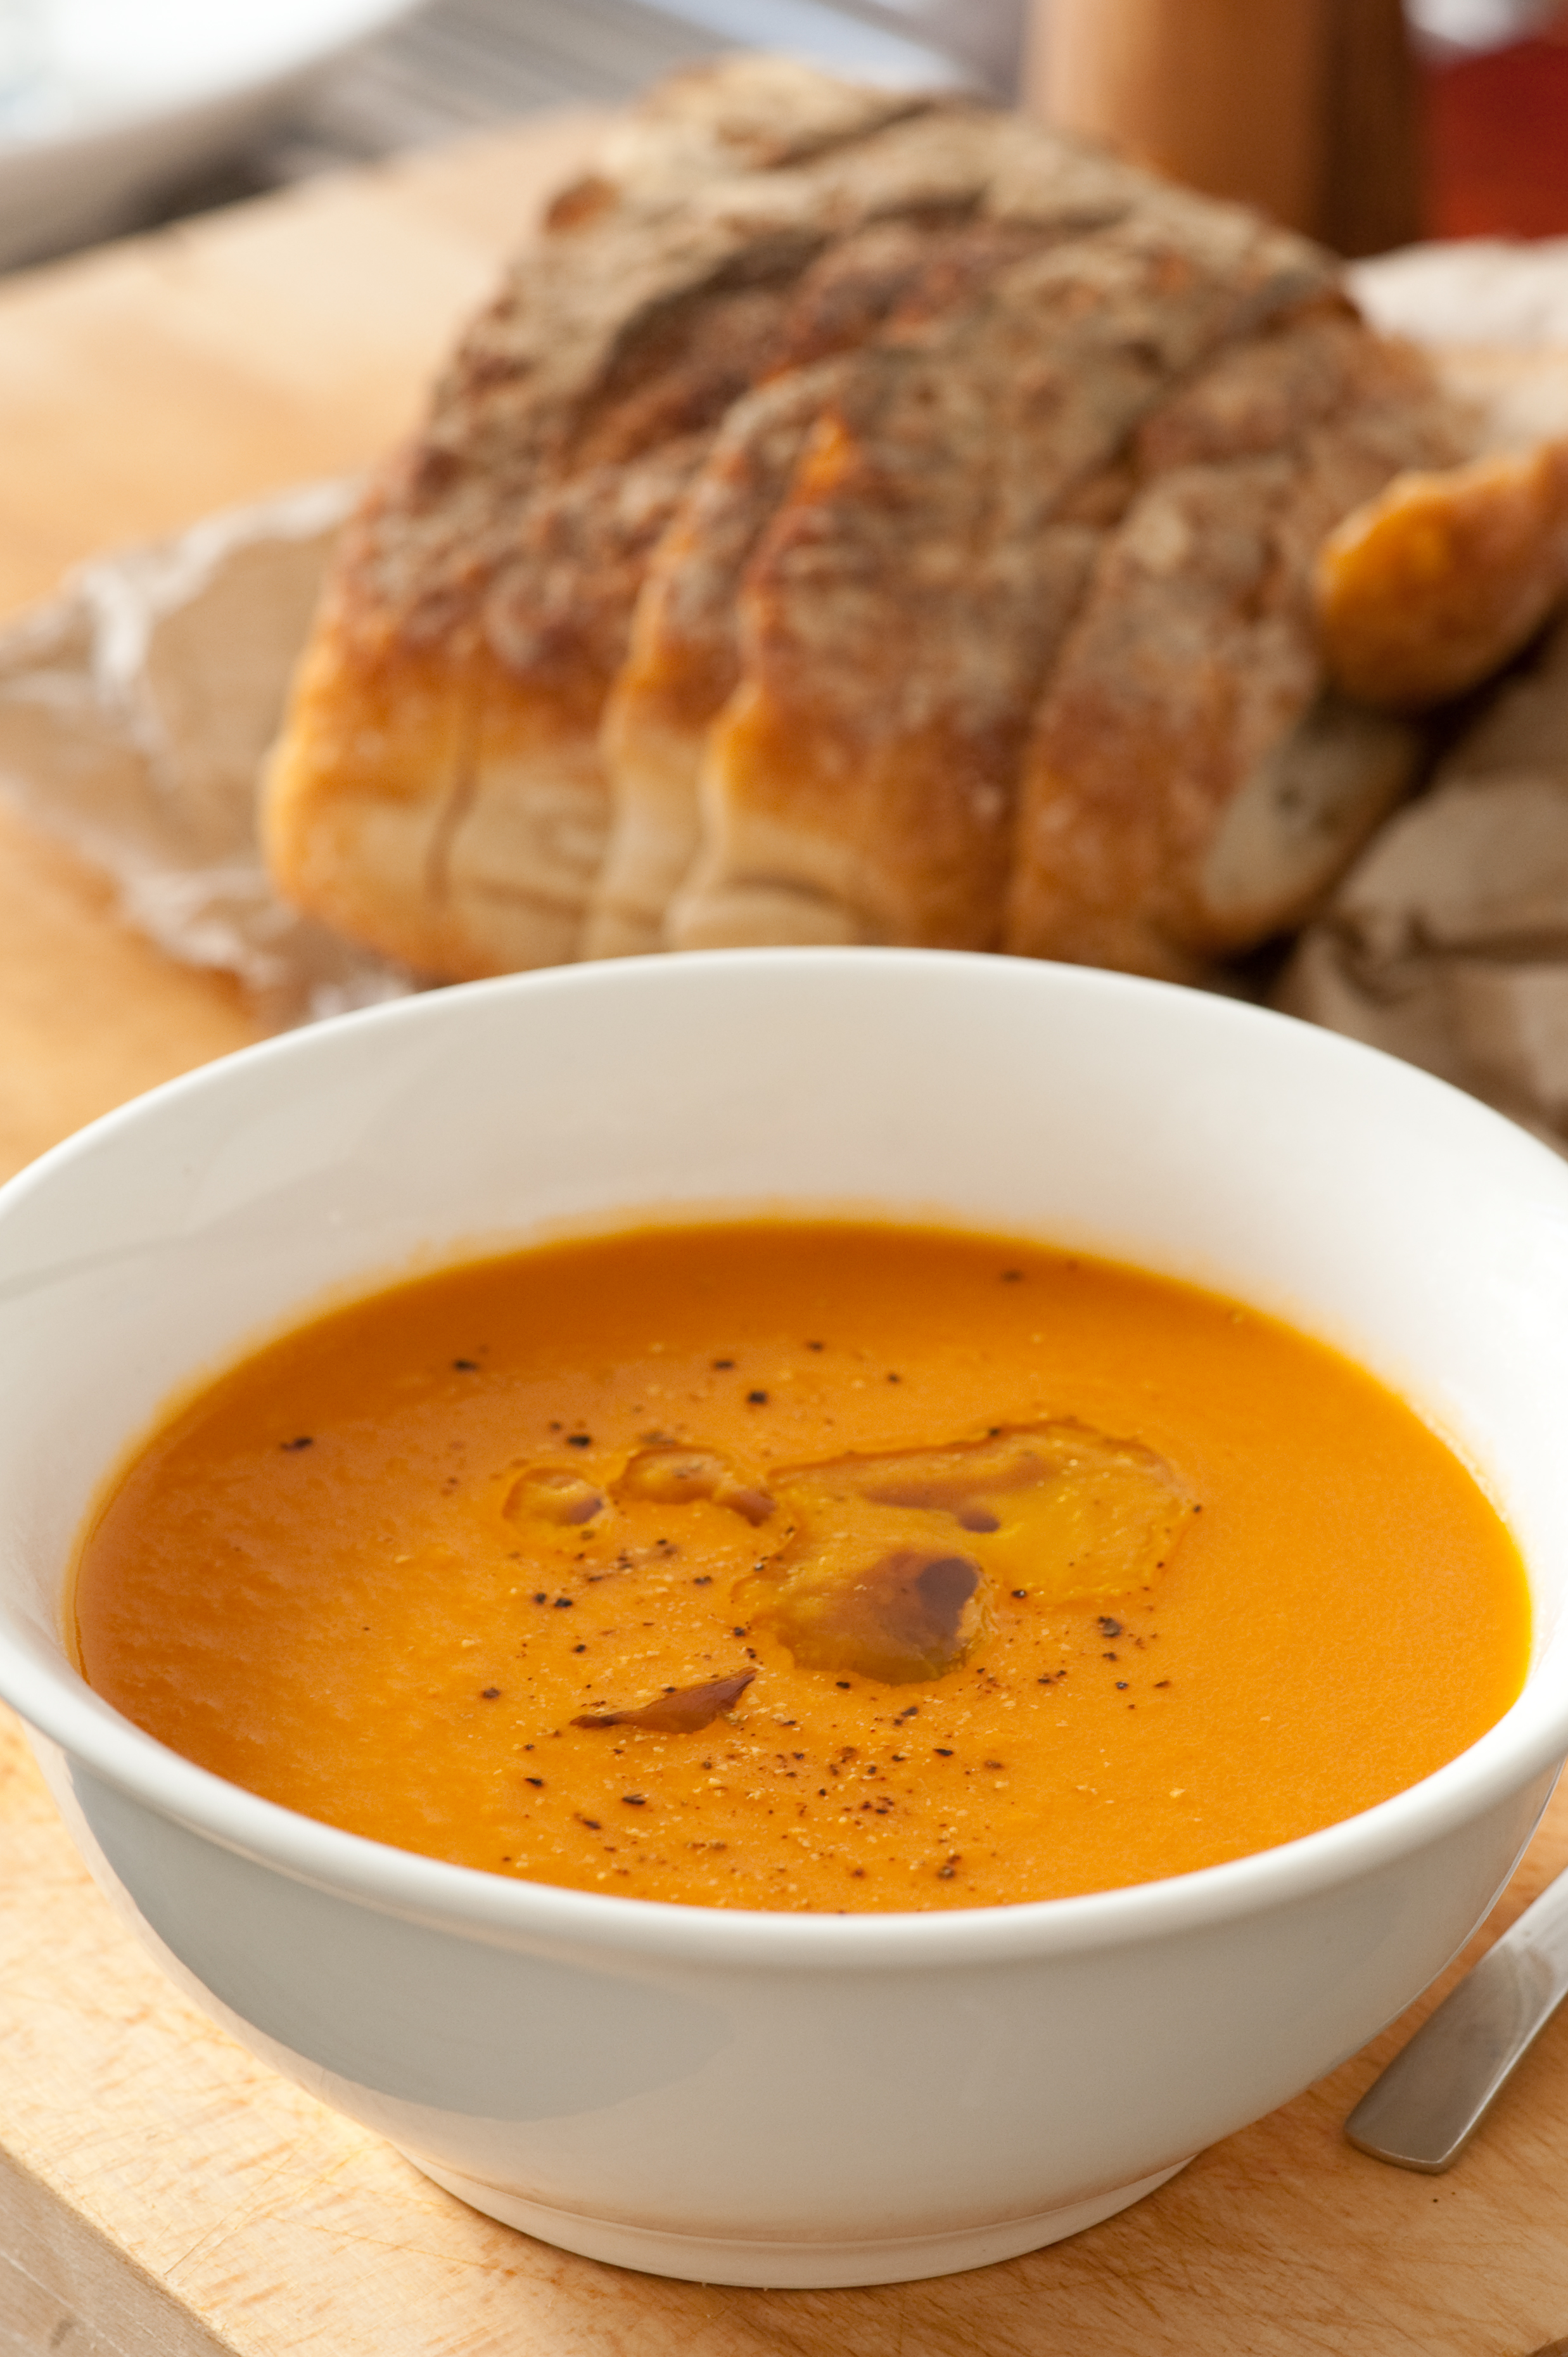 A bowl of bright-orange, beta-carotene rich carrot soup with crusty bread